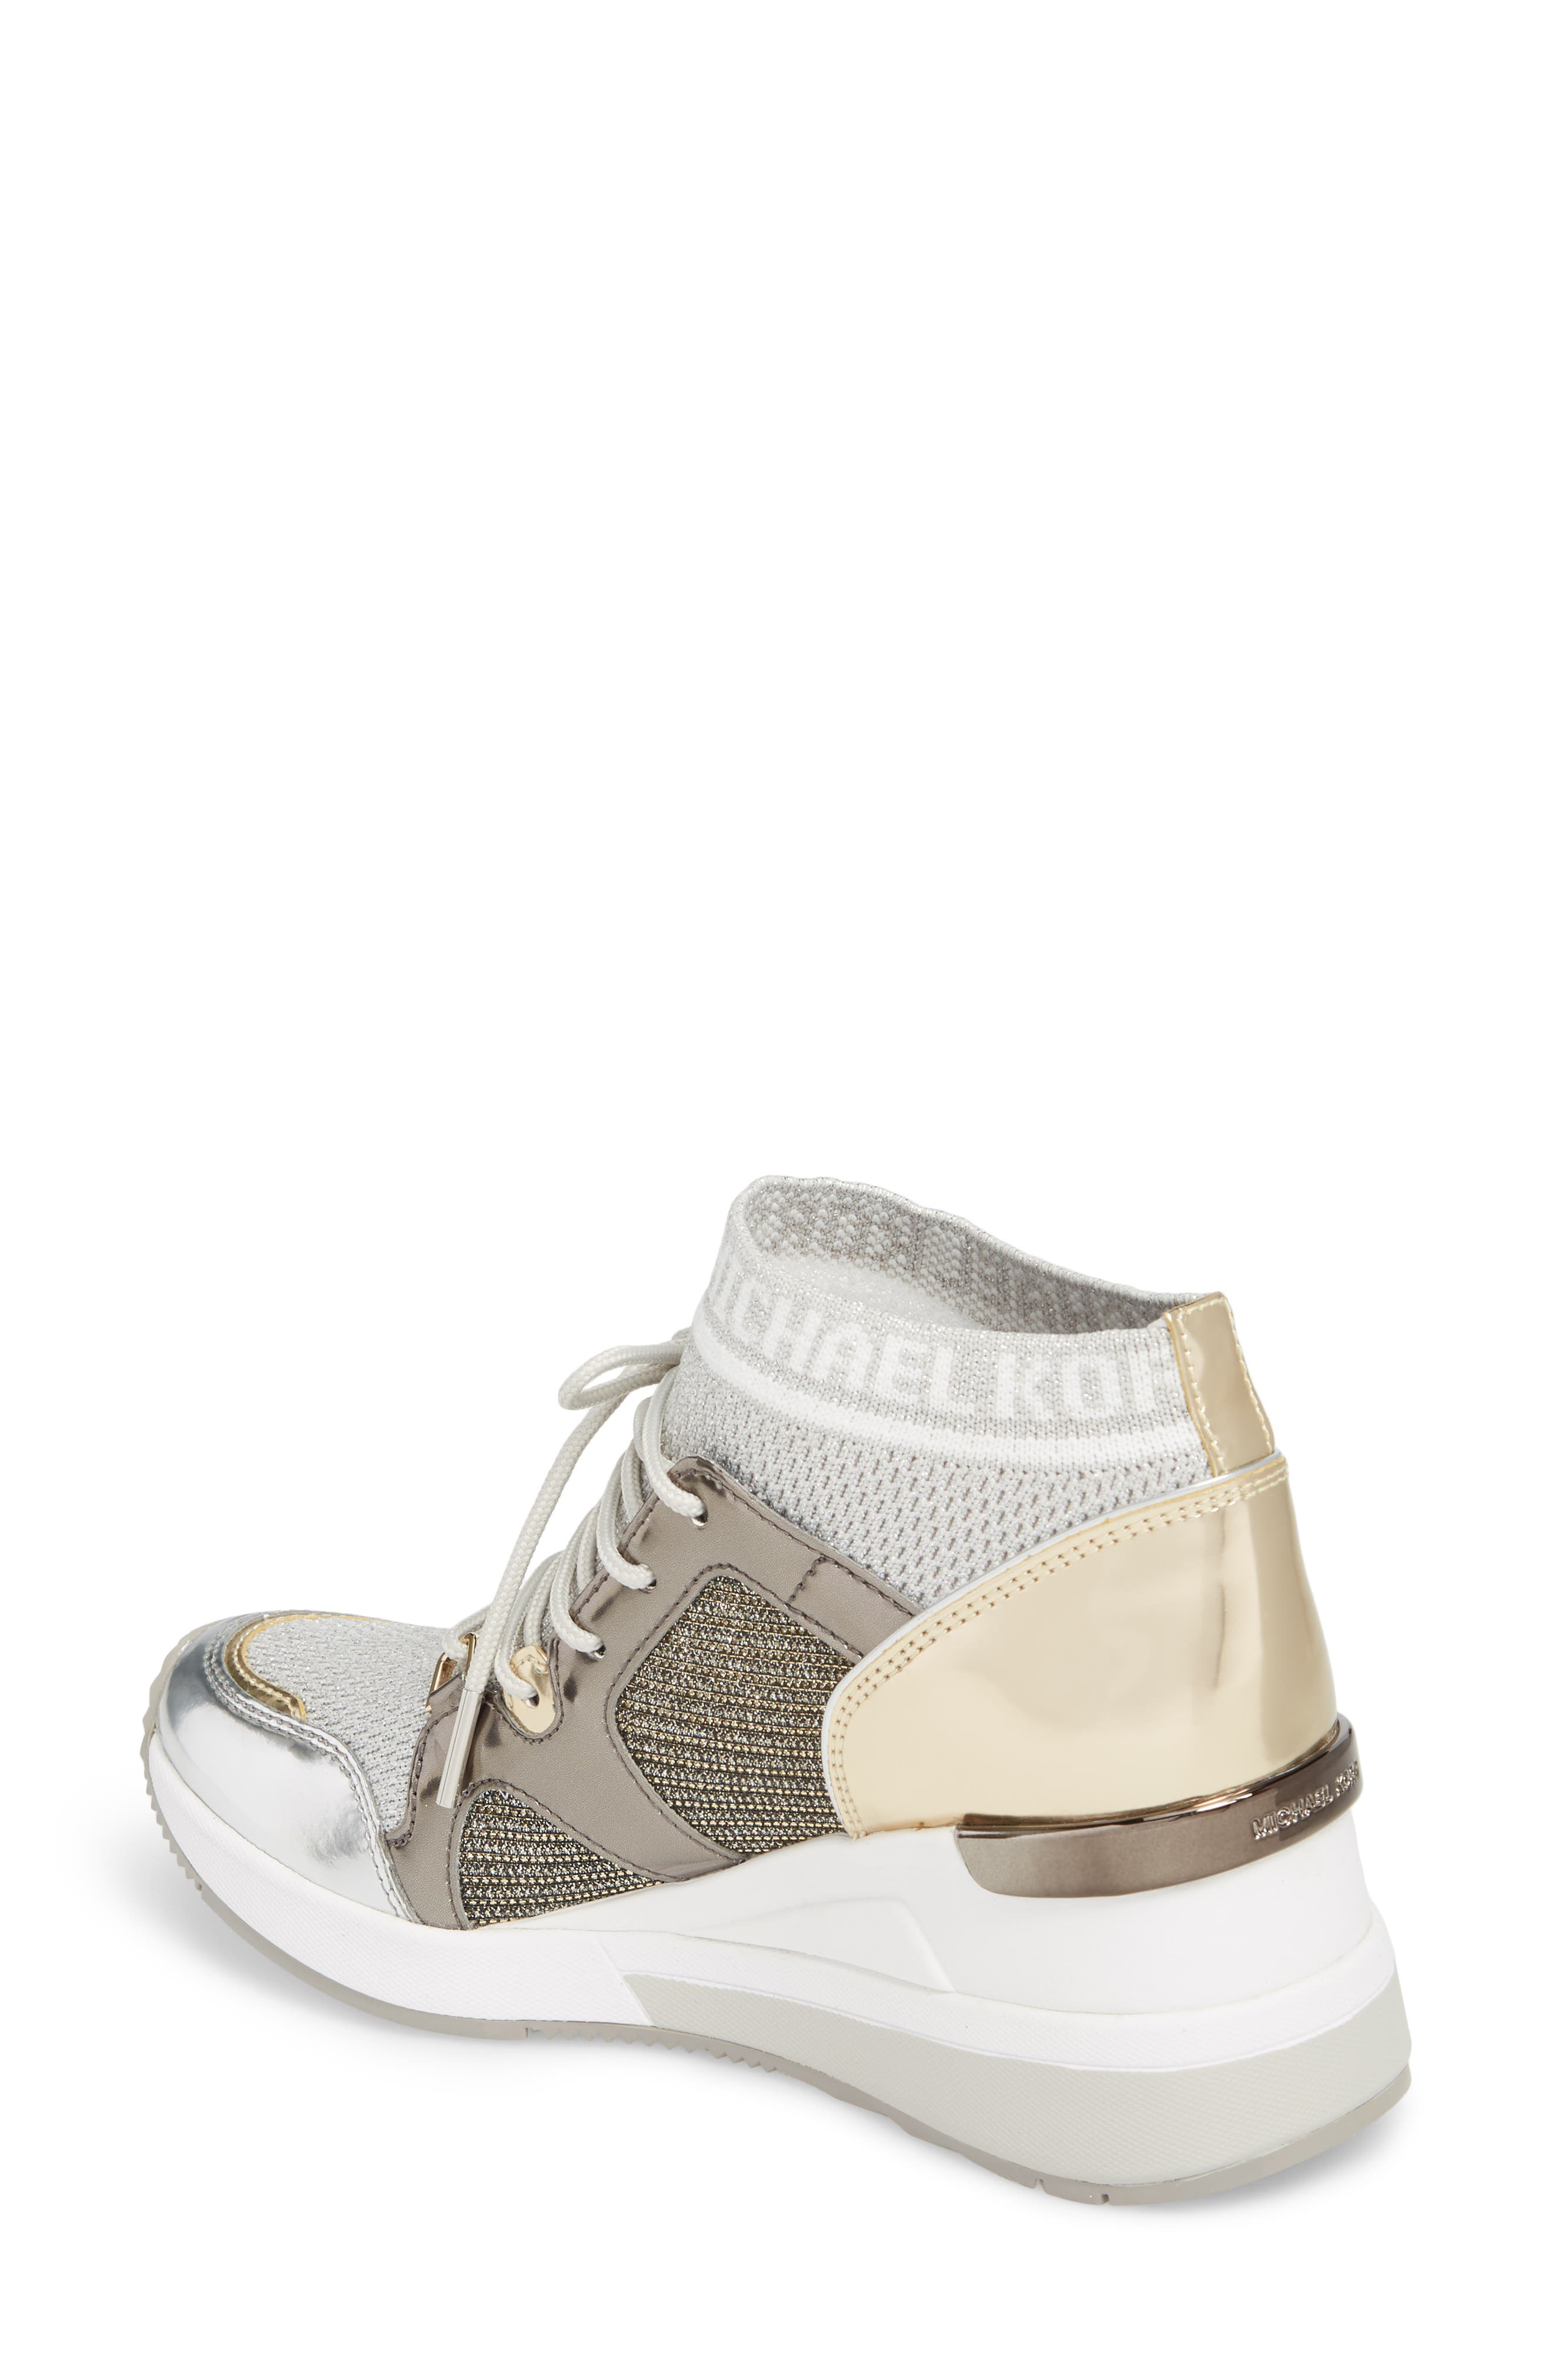 Hilda Wedge Sneaker,                             Alternate thumbnail 2, color,                             Silver Knit Fabric